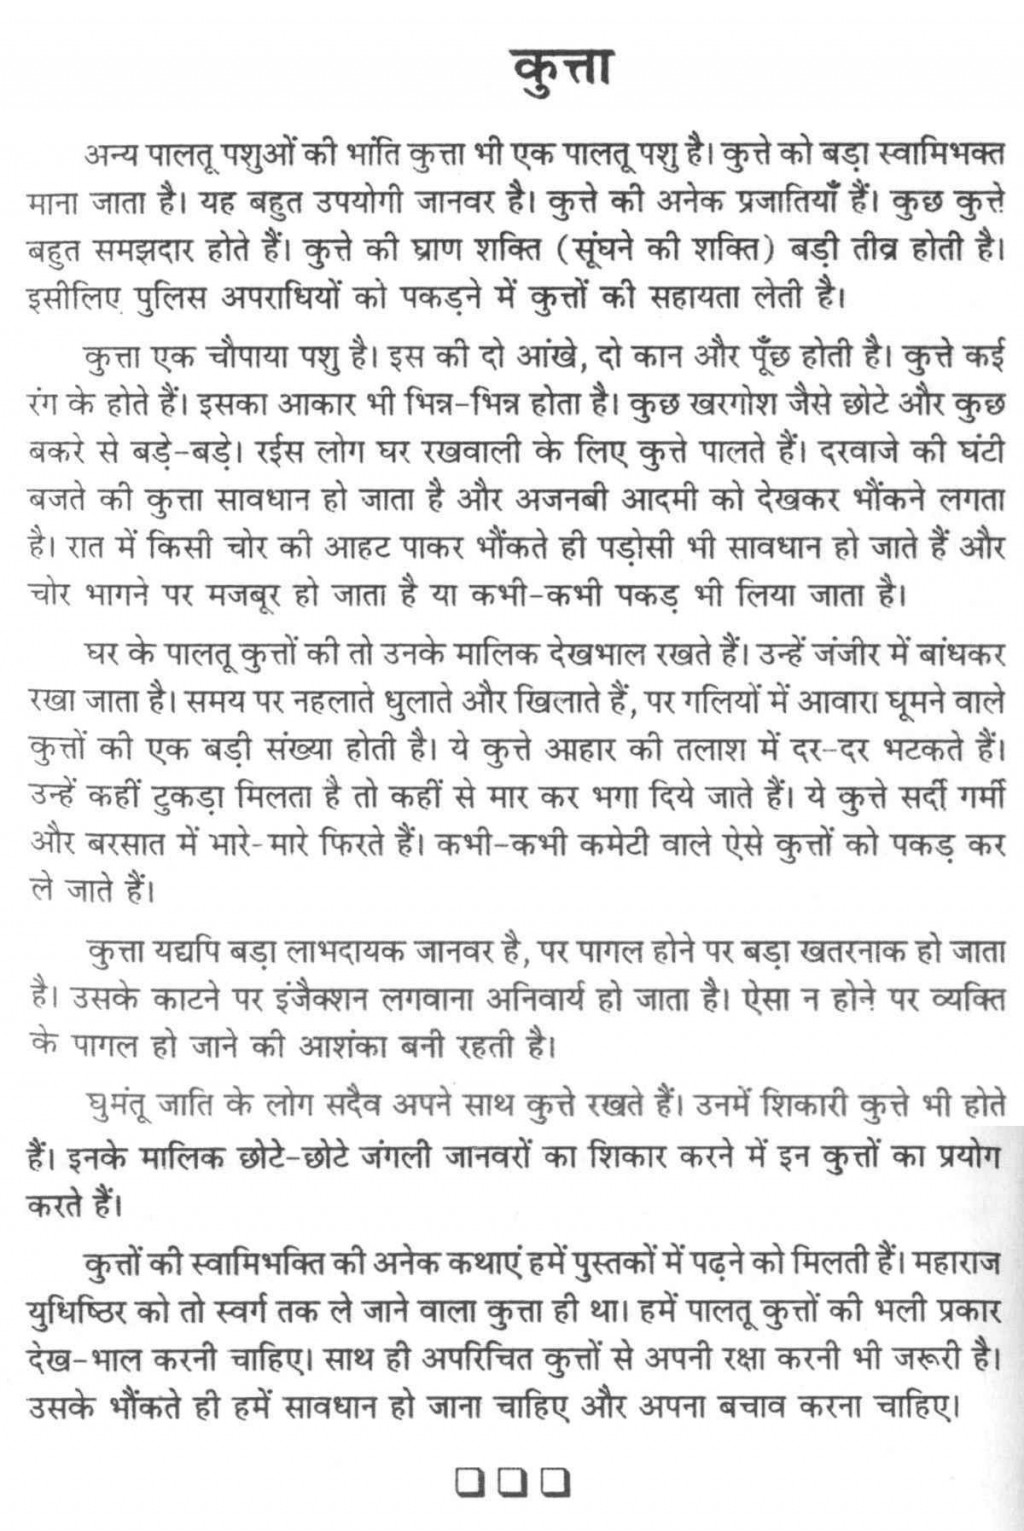 004 Essay Example About Dog Nutrition Lost Tools Of Writing Level Demo 53 Pet Frightening Persuasive Dogs And Cats Comparing My In Hindi Large